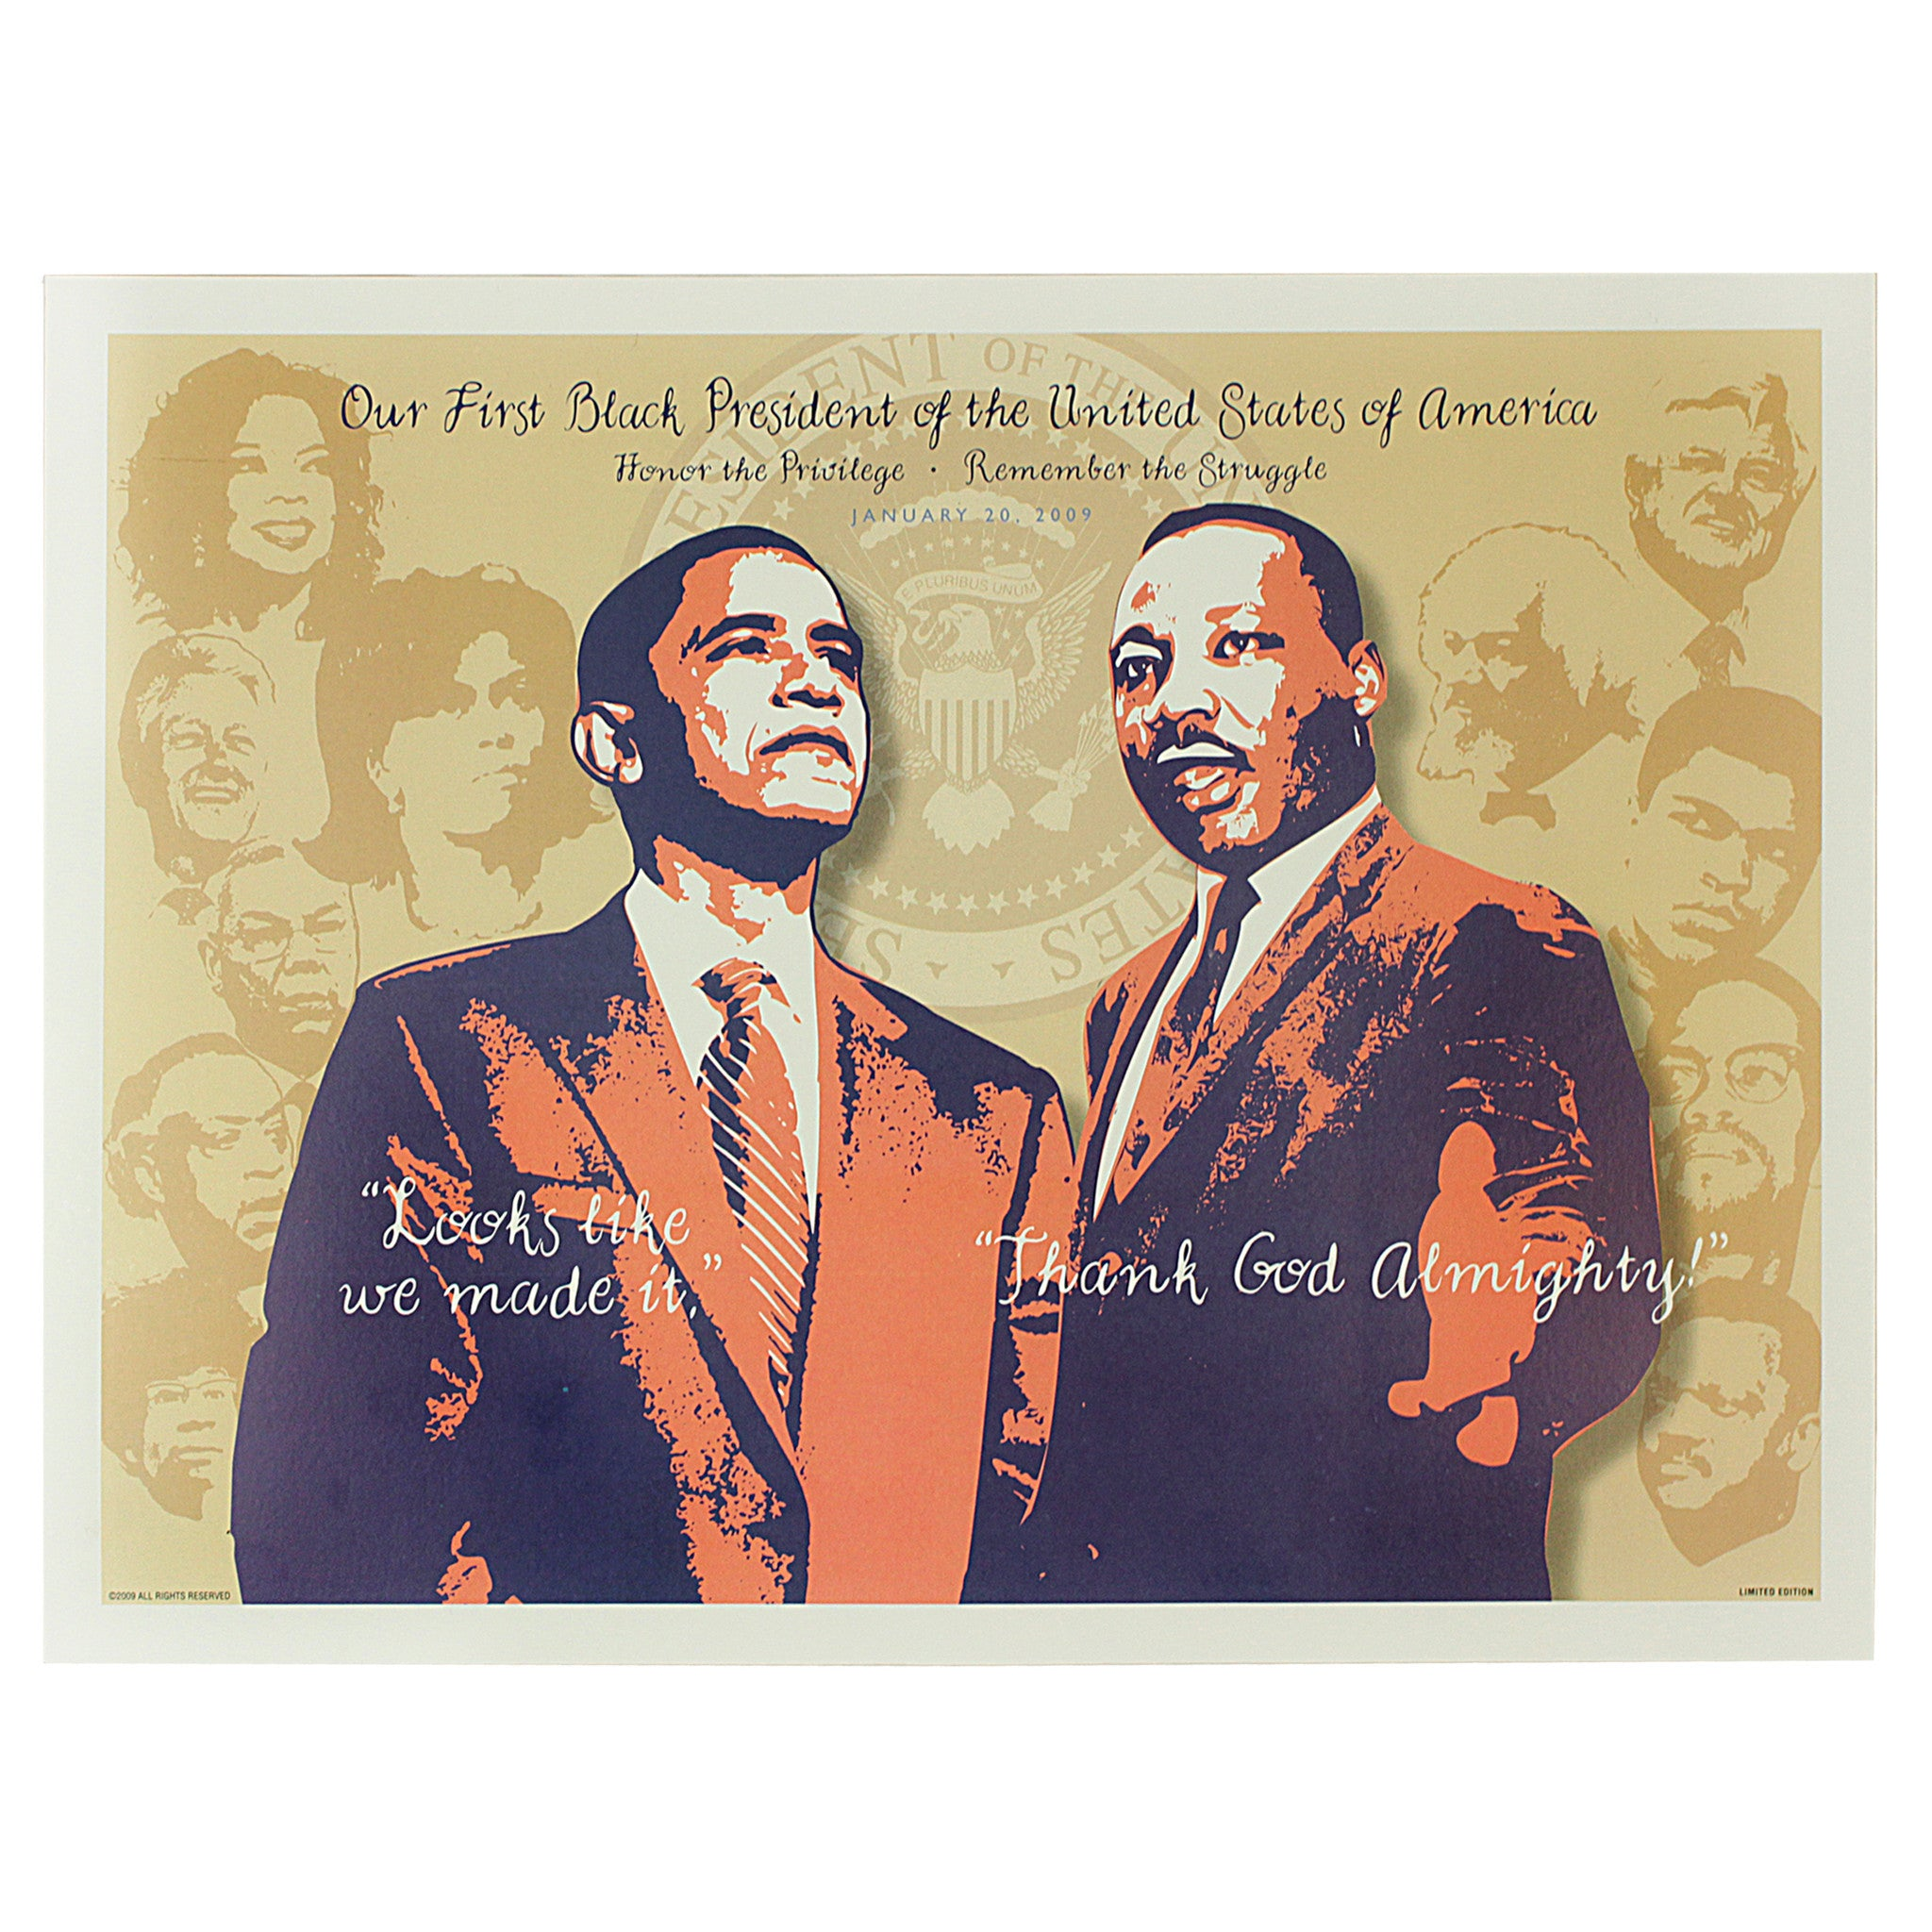 Honor the Priveledge and Remember the Struggle: Barack Obama and Dr. Martin Luther King, Jr.